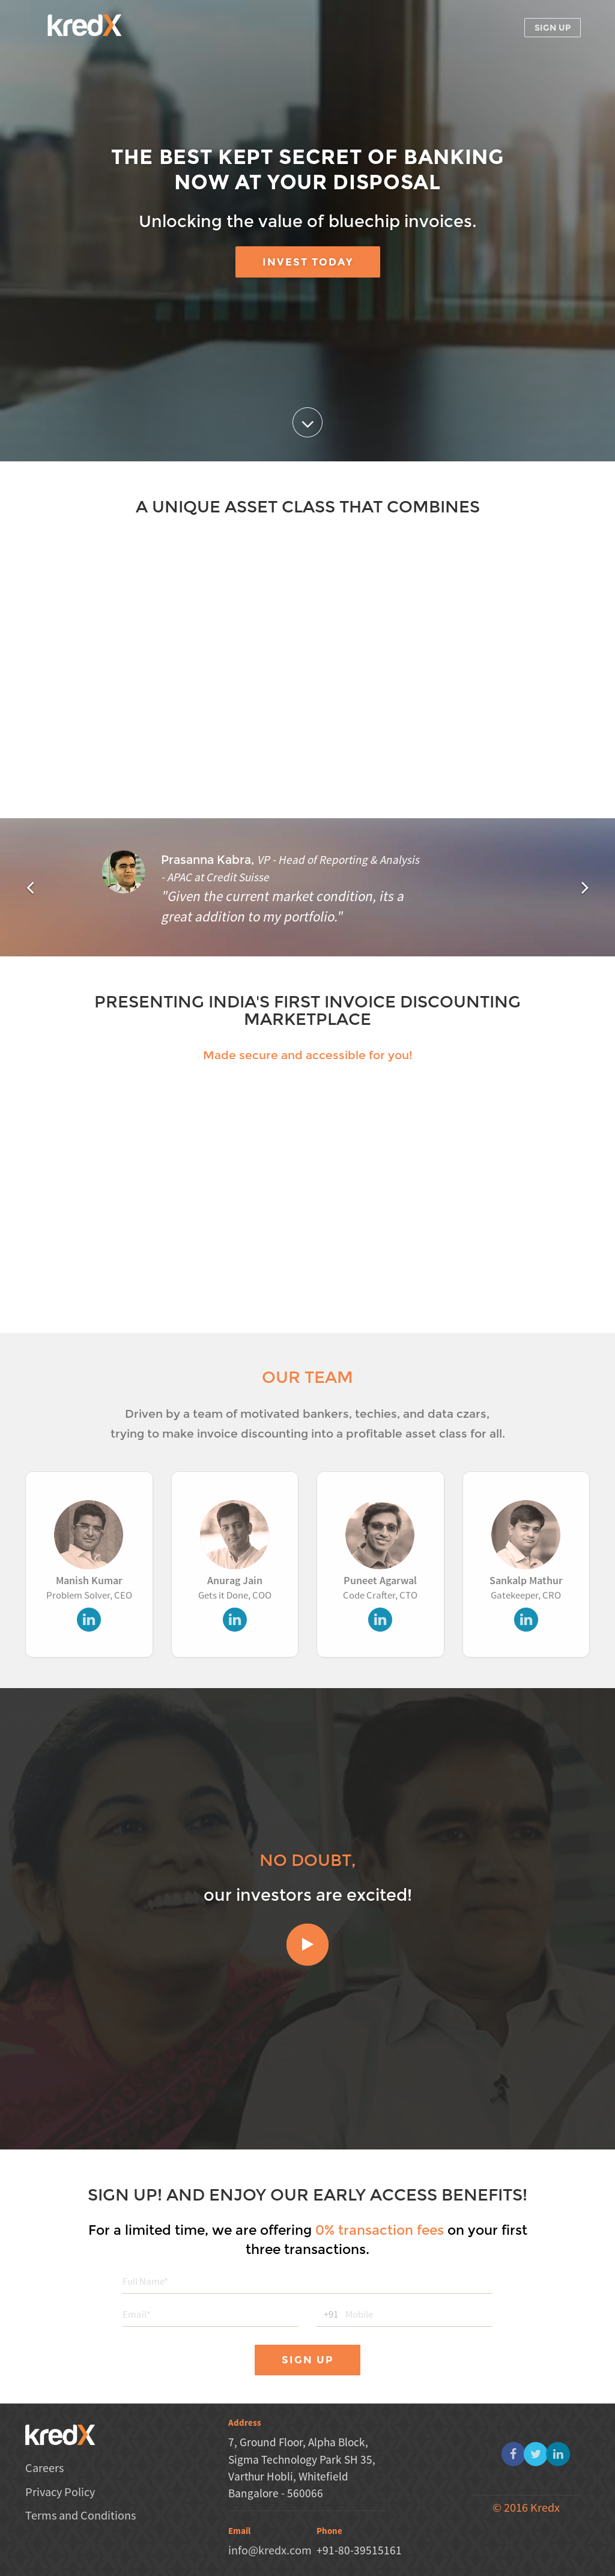 KredX Competitors, Revenue and Employees - Owler Company Profile